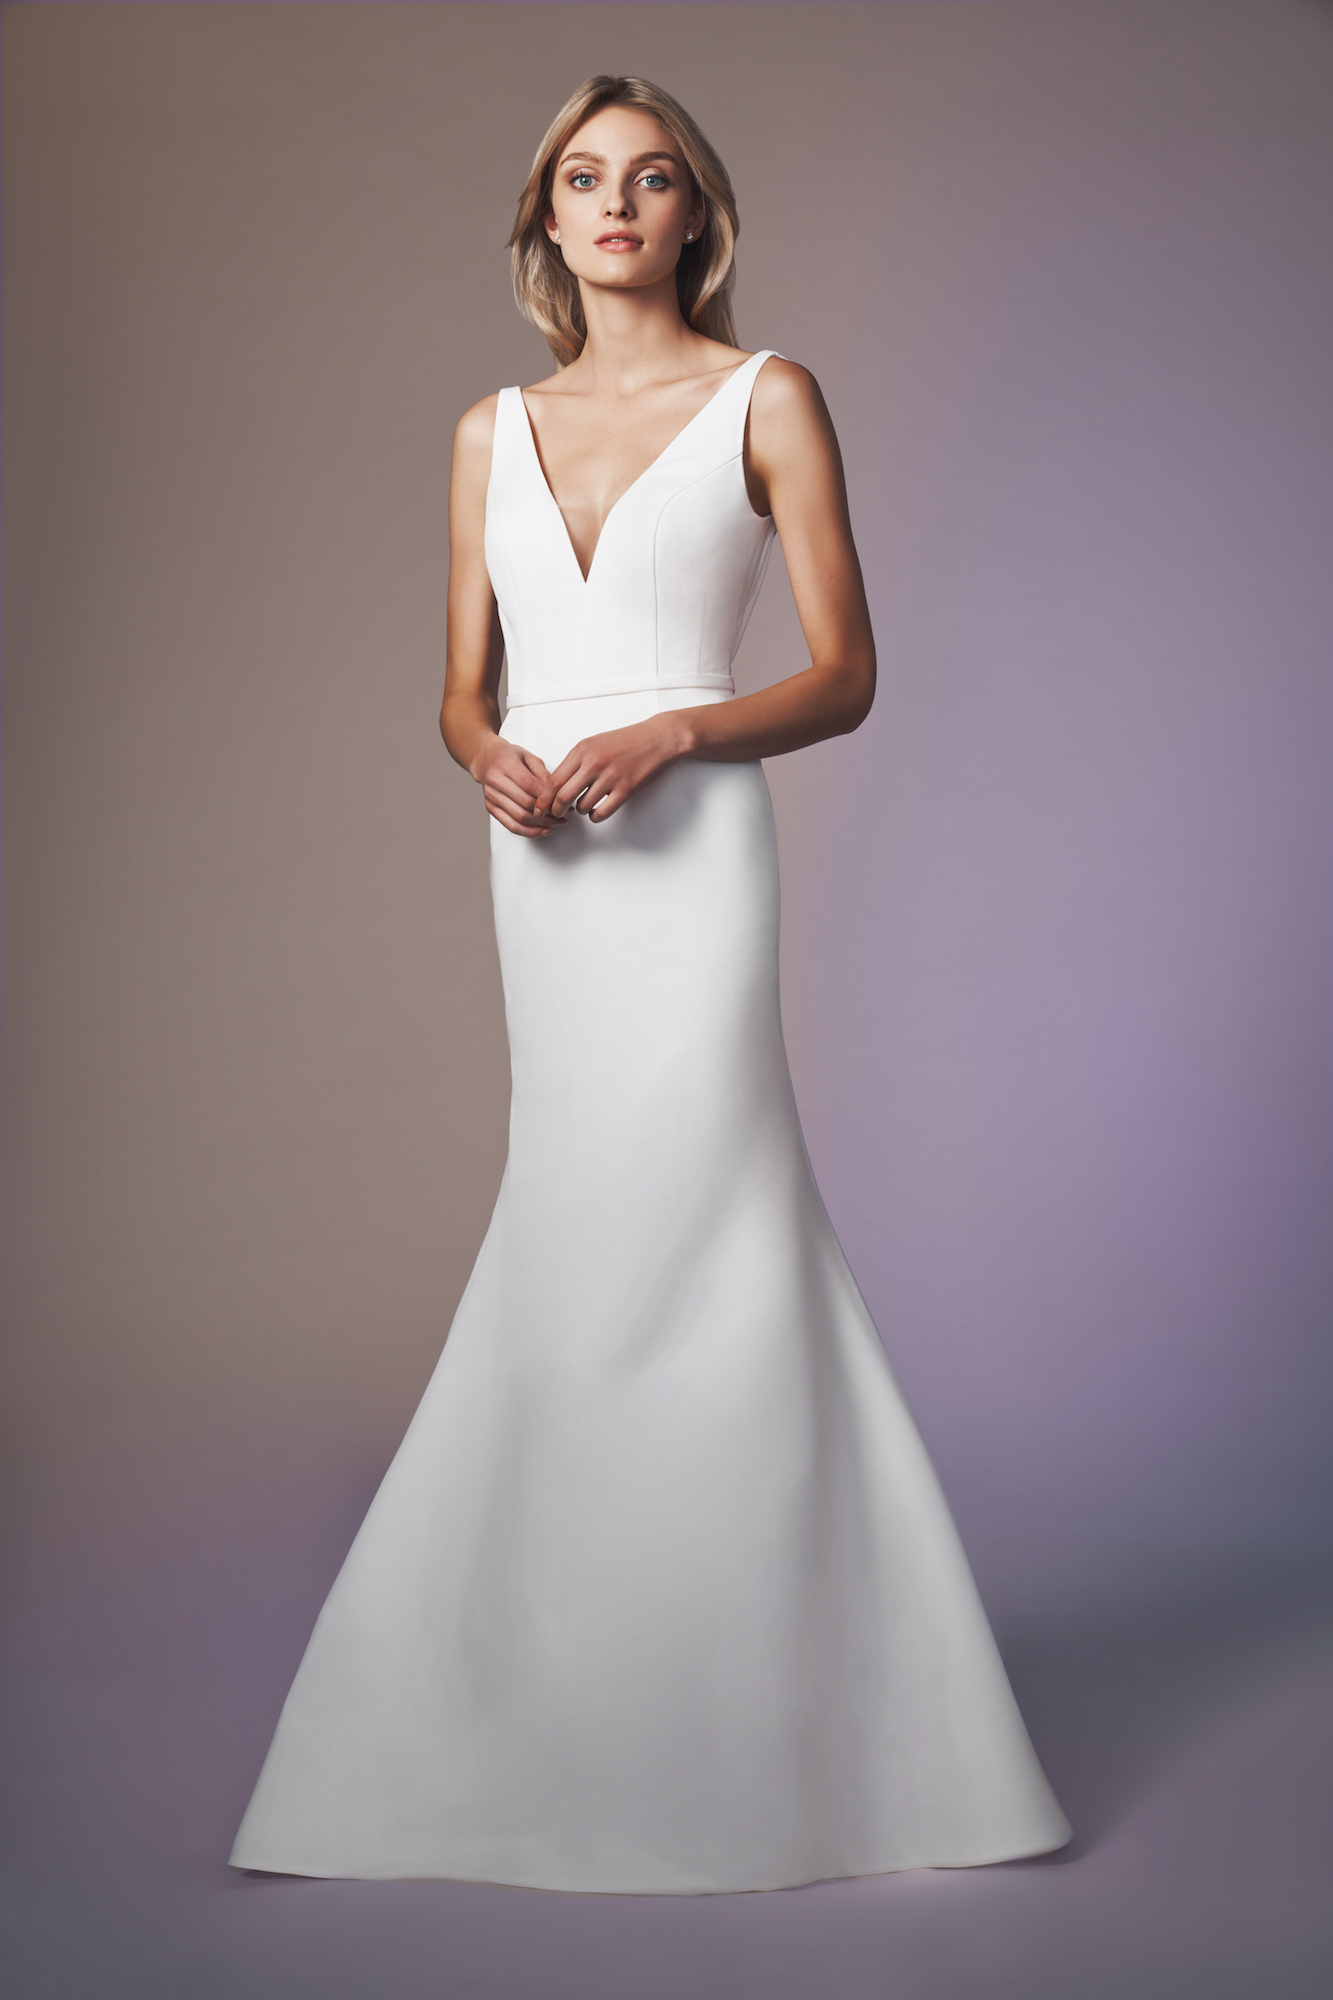 V-neck fit and slightly flared gown of faille accented with low V pleated back bodice The Moet gown is made to order. Please allow 16 weeks for delivery. Rush options may be available. Please contact an Expert stylist to confirm.